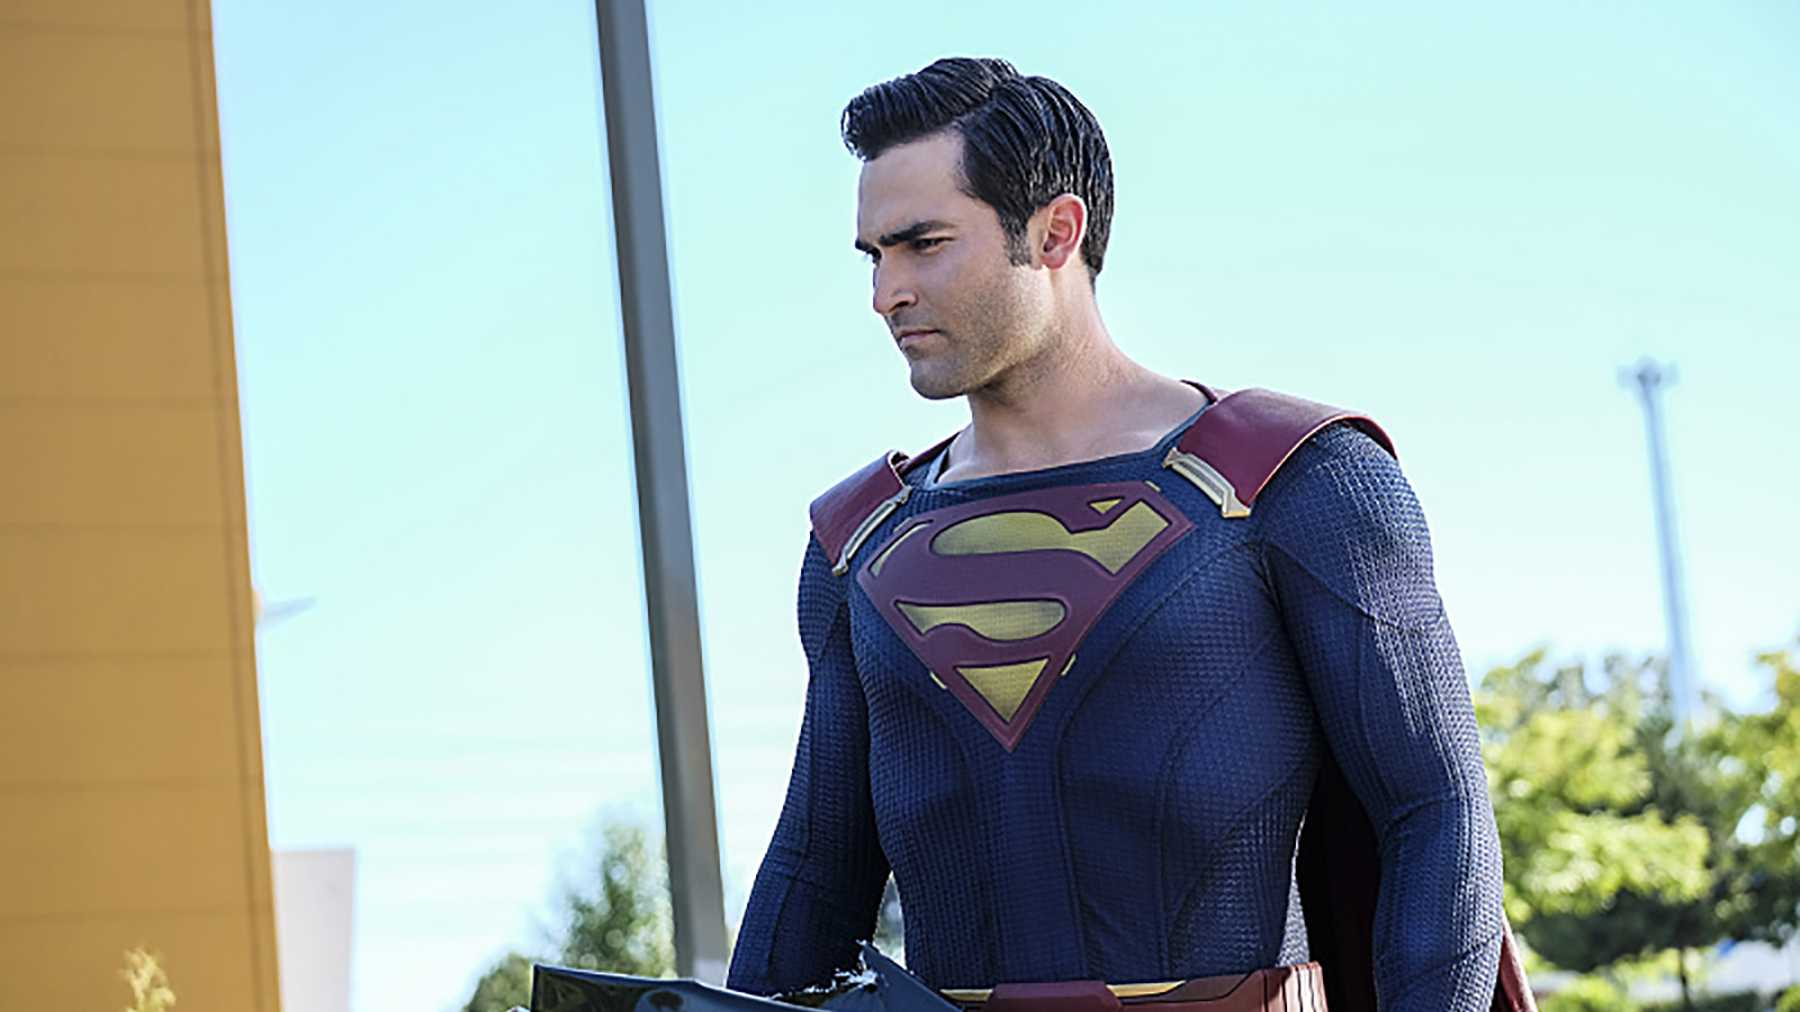 Superman Series Coming to CW (Video)